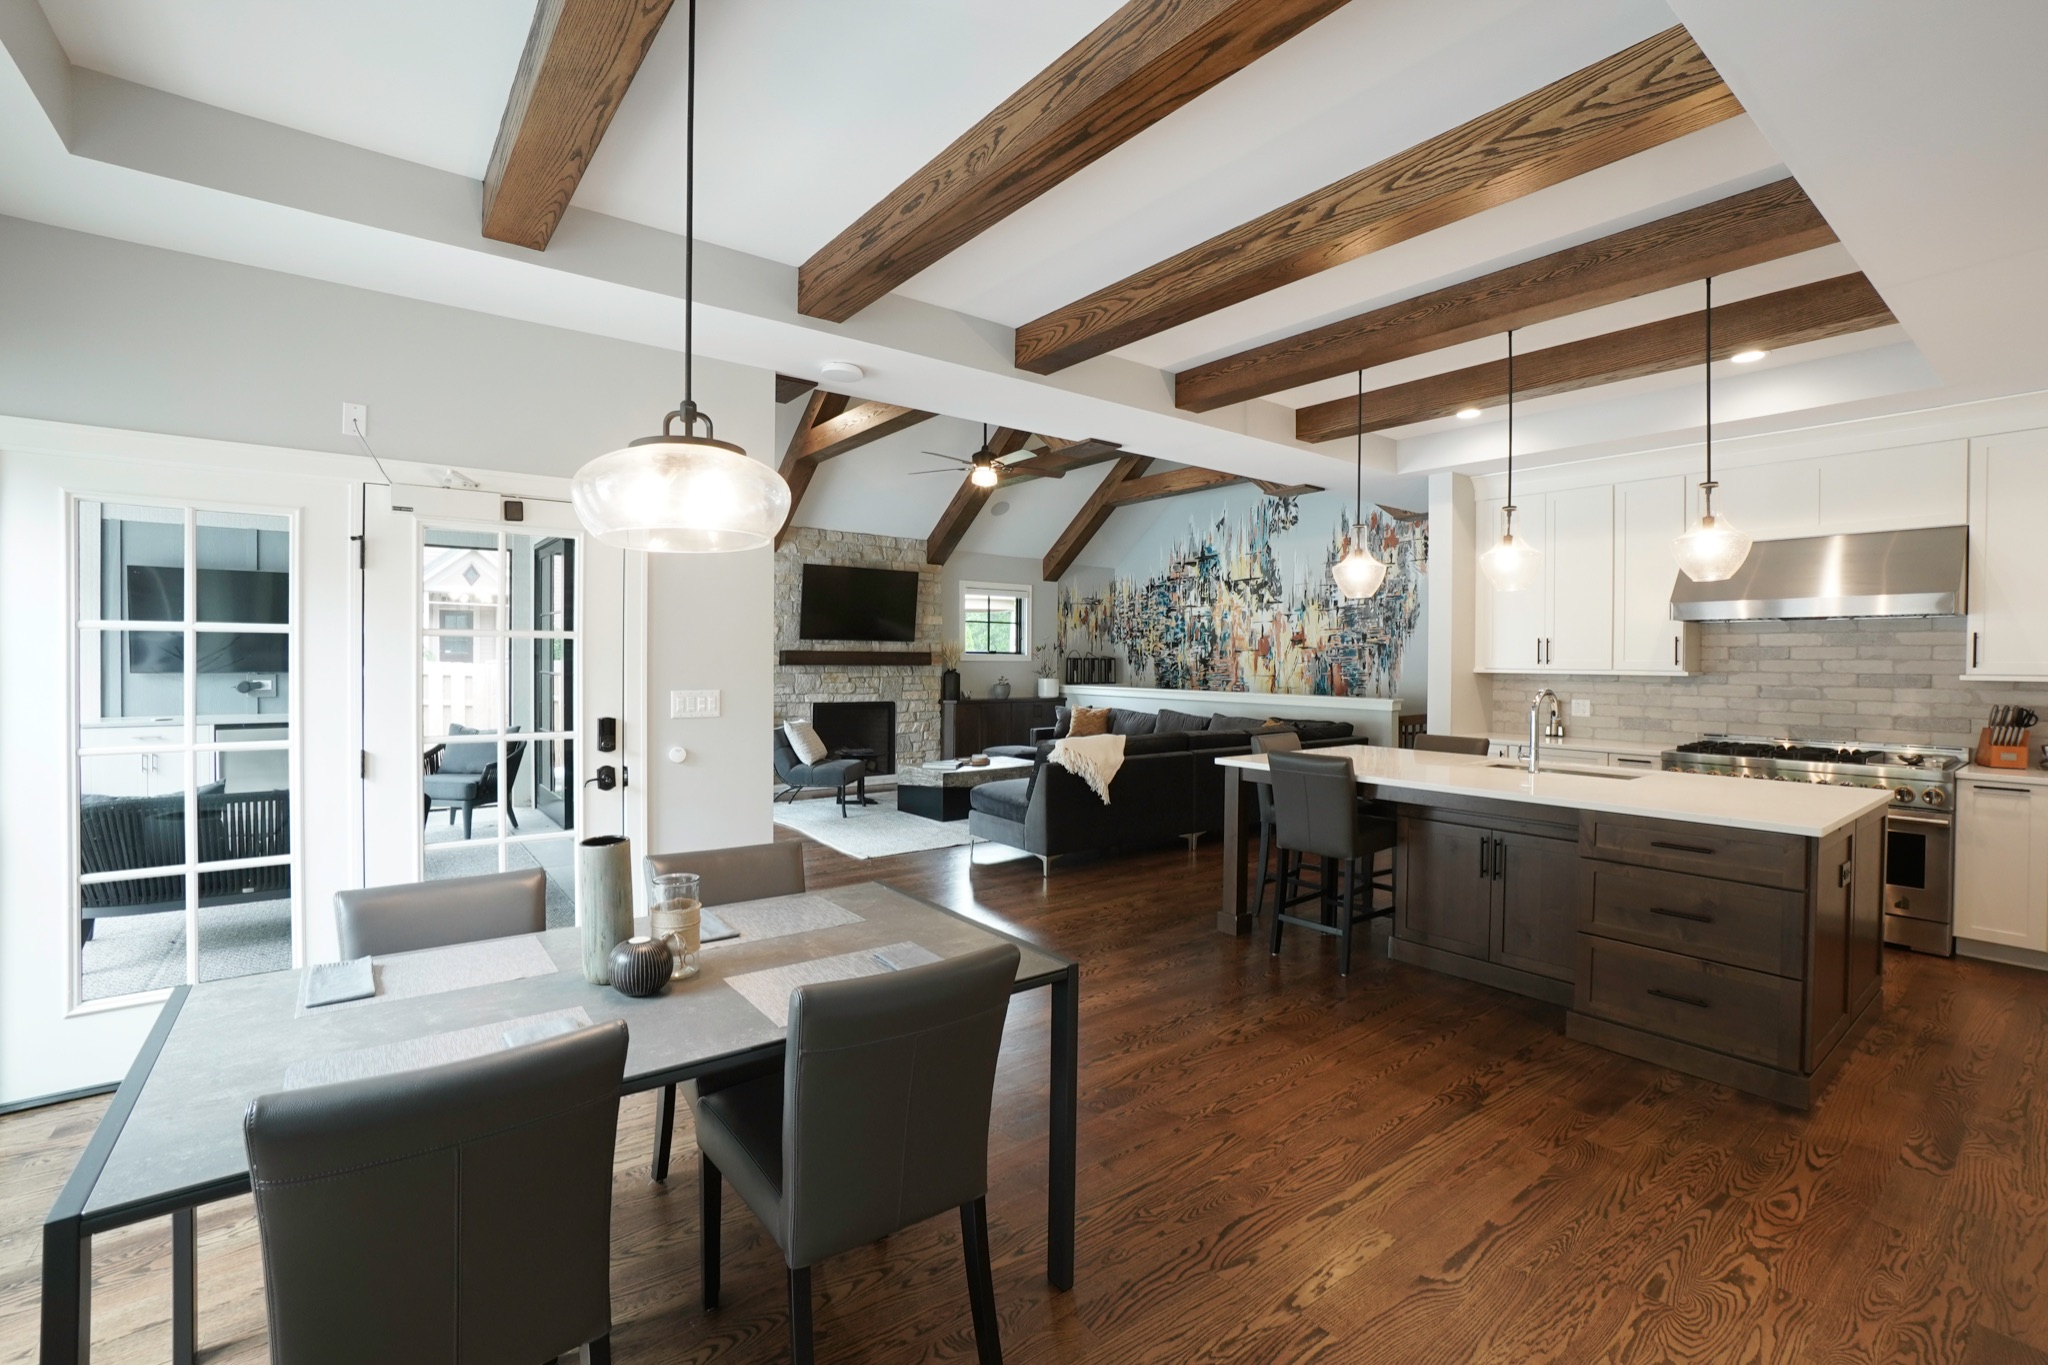 Open kitchen and living room space with exposed natural wood beamed ceilings, dark wood cabinets and a living room with a focal mural wall